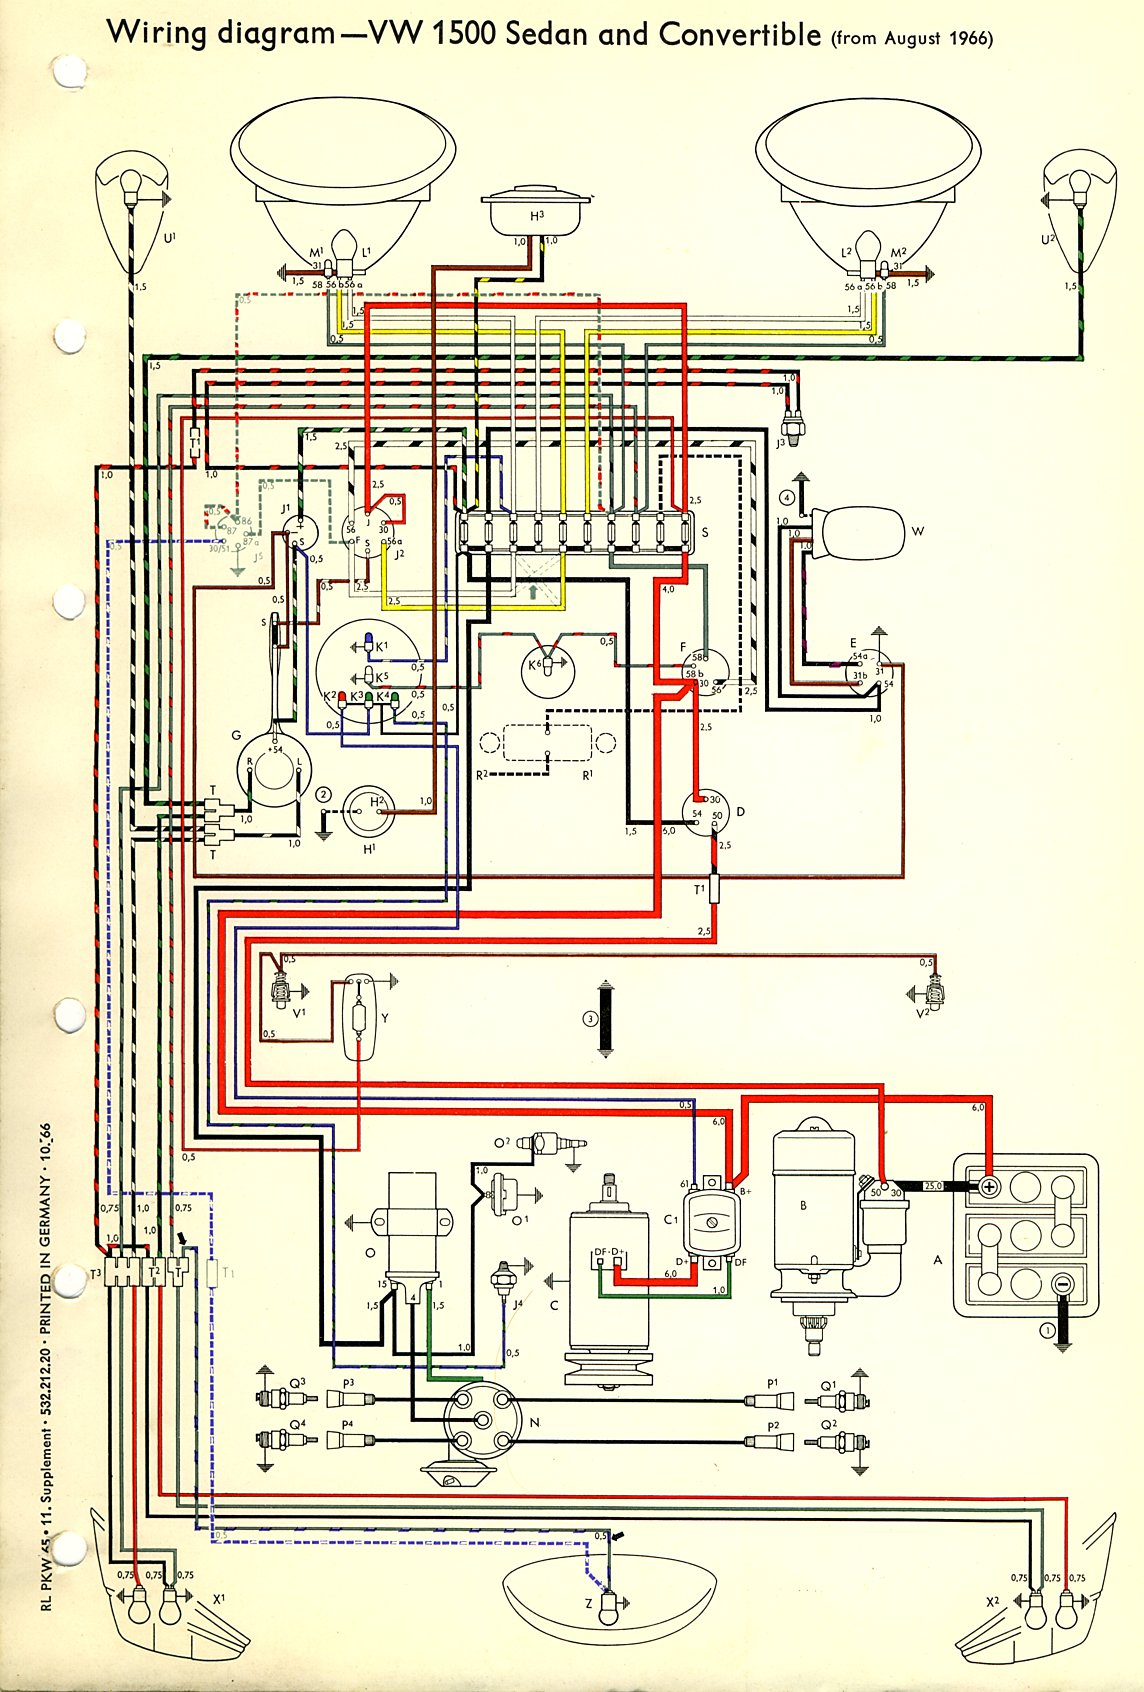 wiring diagram for volkswagen wiring diagram data 1973 VW Wiring Diagram thesamba com type 1 wiring diagrams volkswagen dune buggy wiring wiring diagram for volkswagen